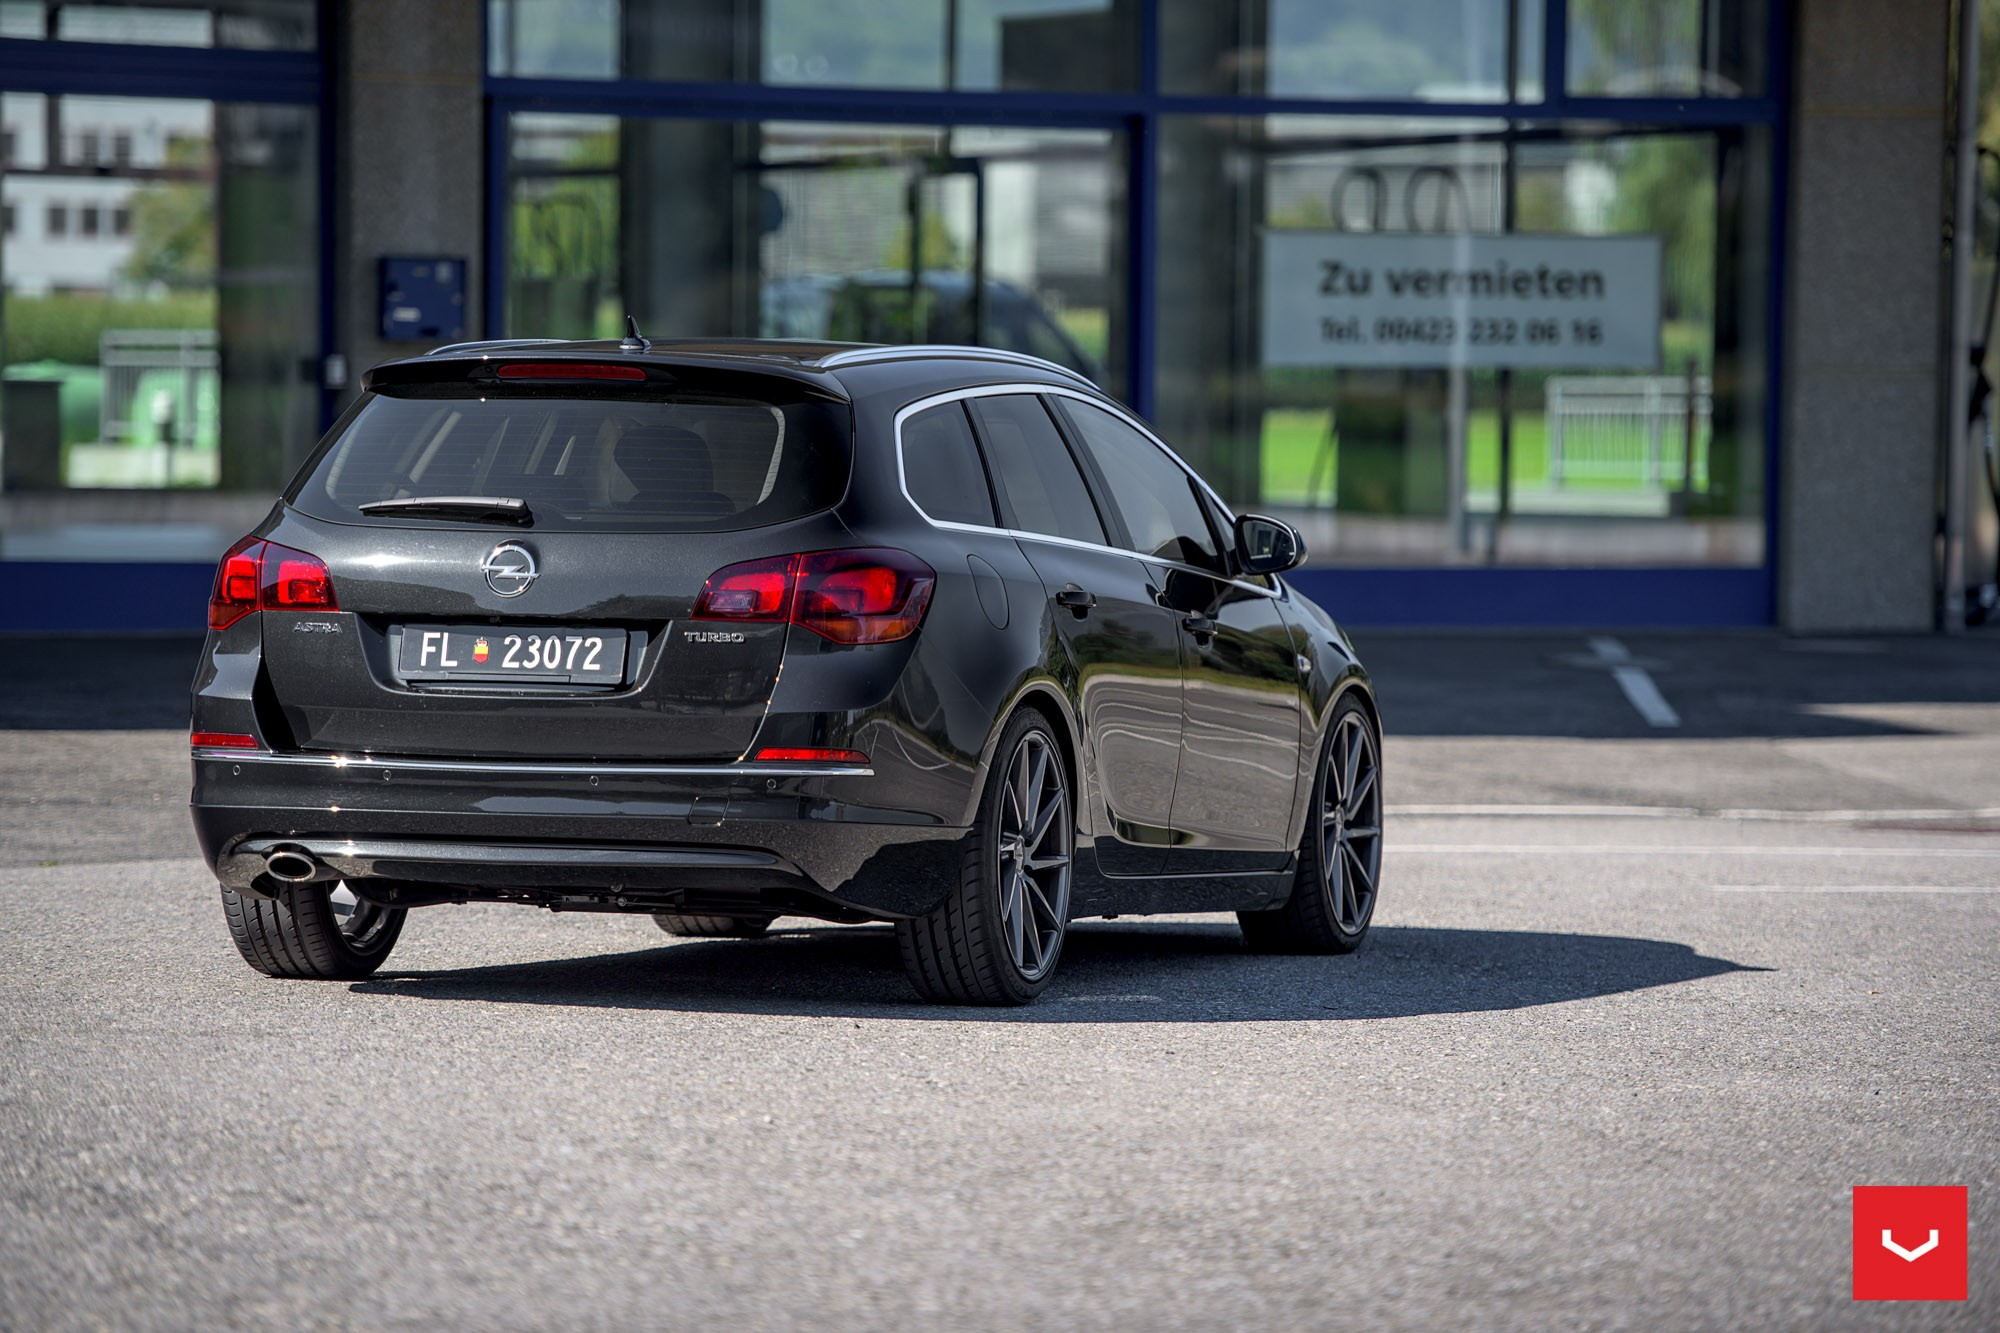 Opel Astra J Wagon Doubles Its Value With Vossen Cvt Wheels Autoevolution